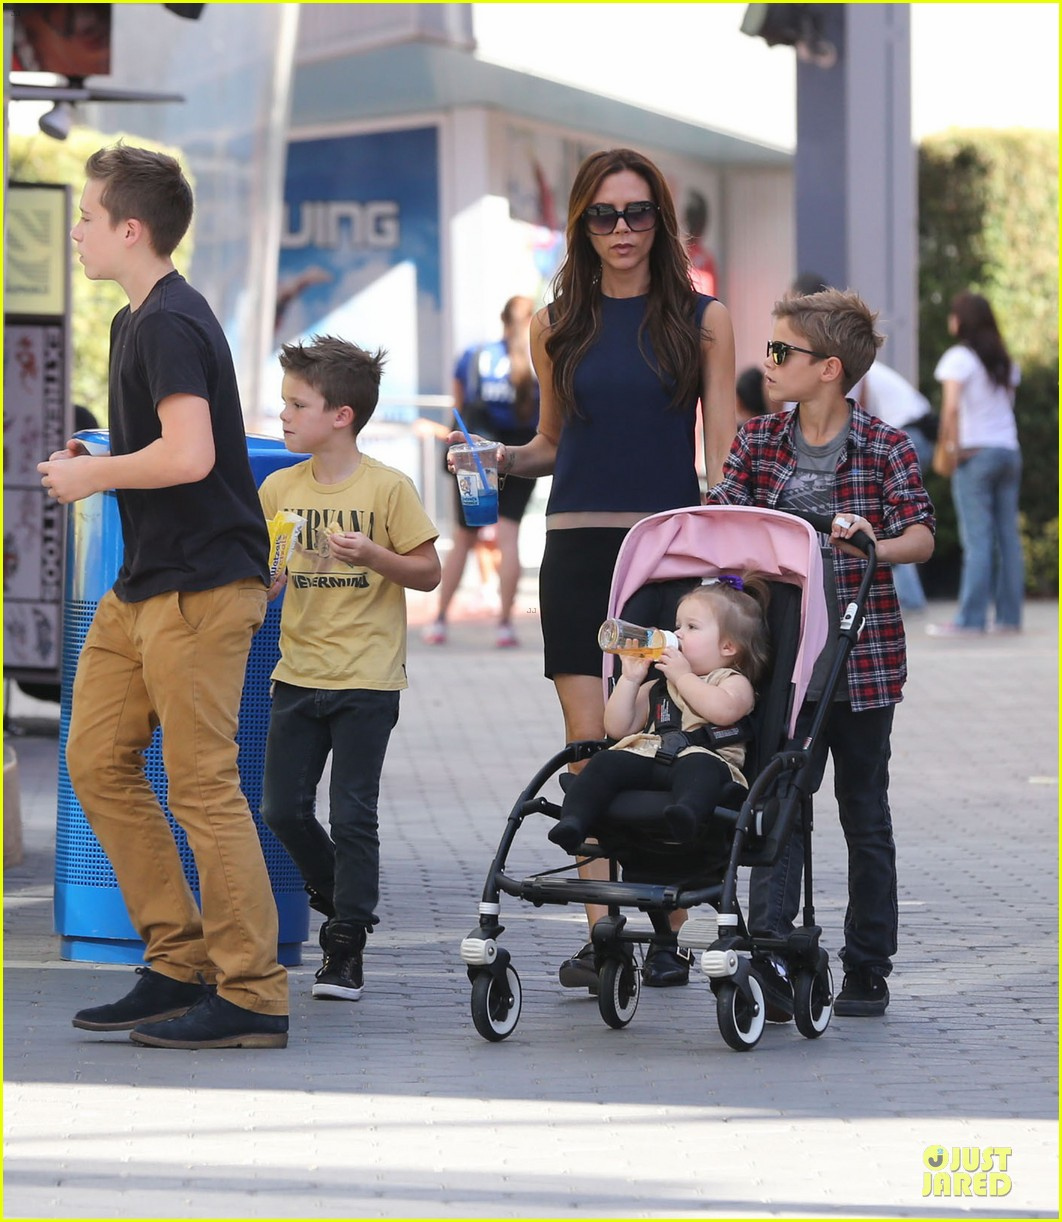 http://cdn03.cdn.justjared.com/wp-content/uploads/2012/11/beckham-universal/victoria-beckham-universal-city-walk-with-the-kids-18.jpg